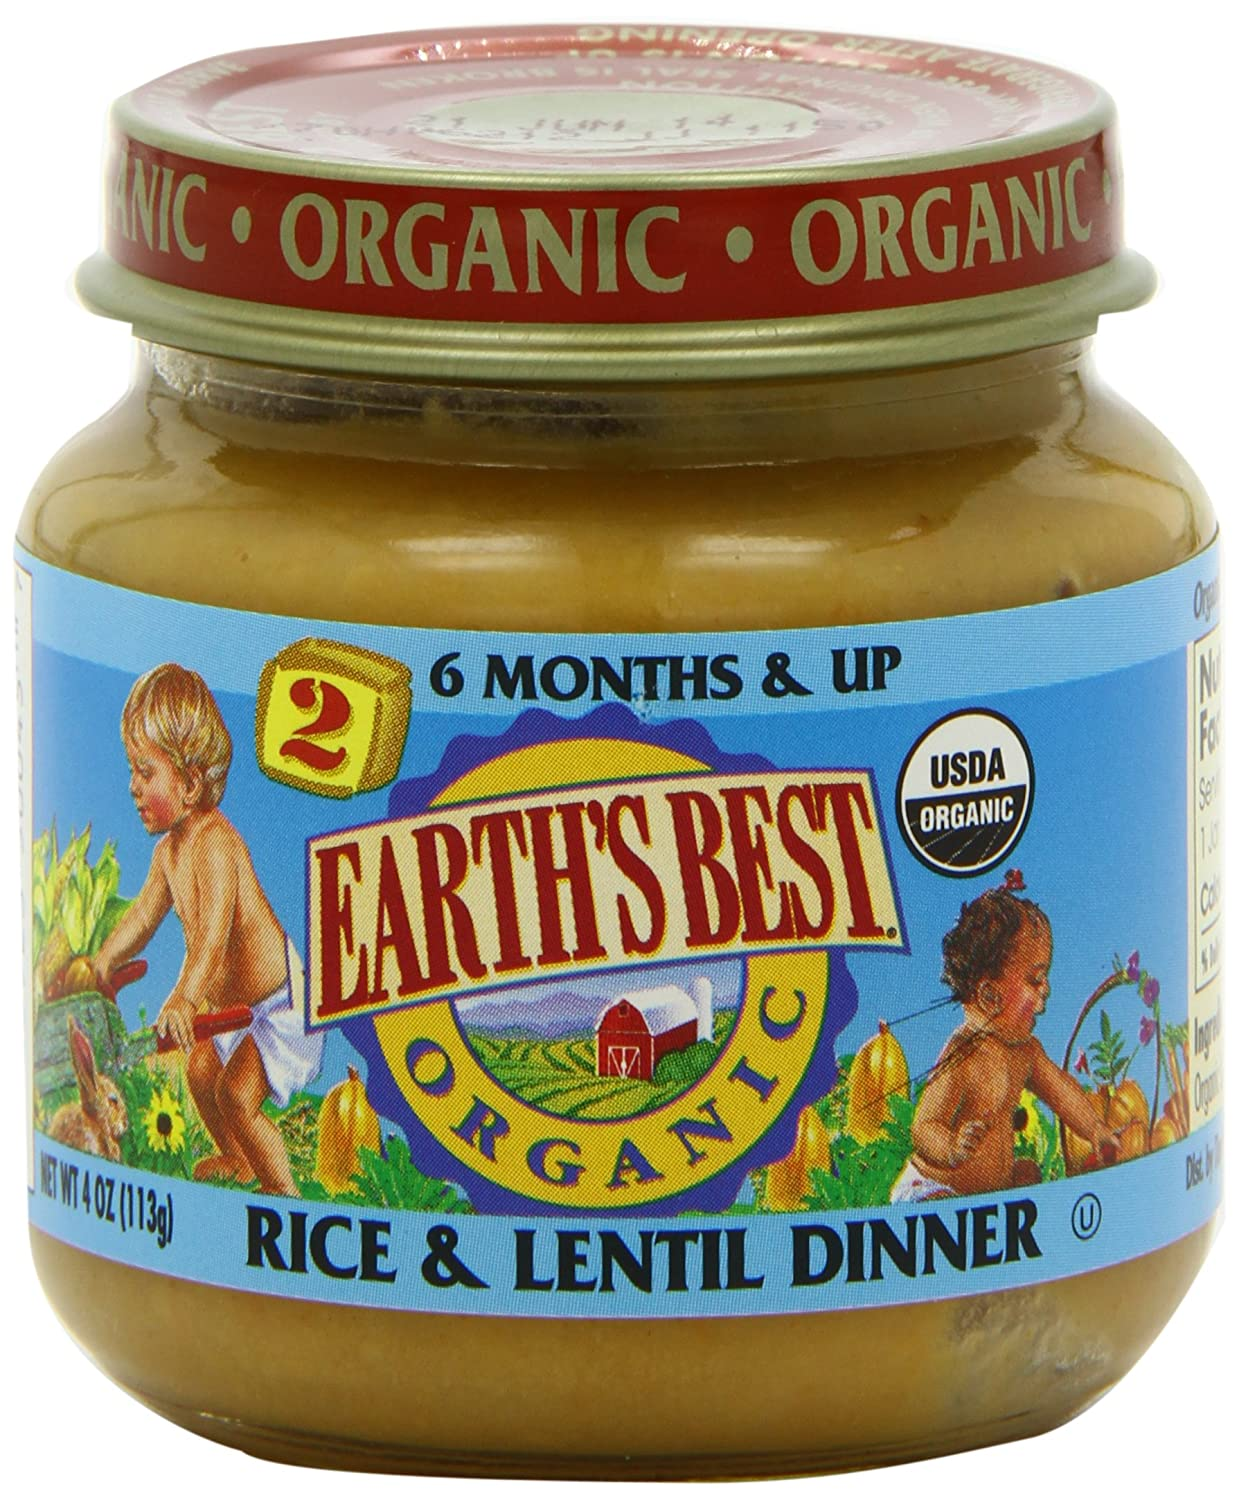 Earths best organic baby food rice lentil dinner 4 ounce pack earths best organic baby food rice lentil dinner 4 ounce pack of 12 amazon grocery gourmet food forumfinder Choice Image